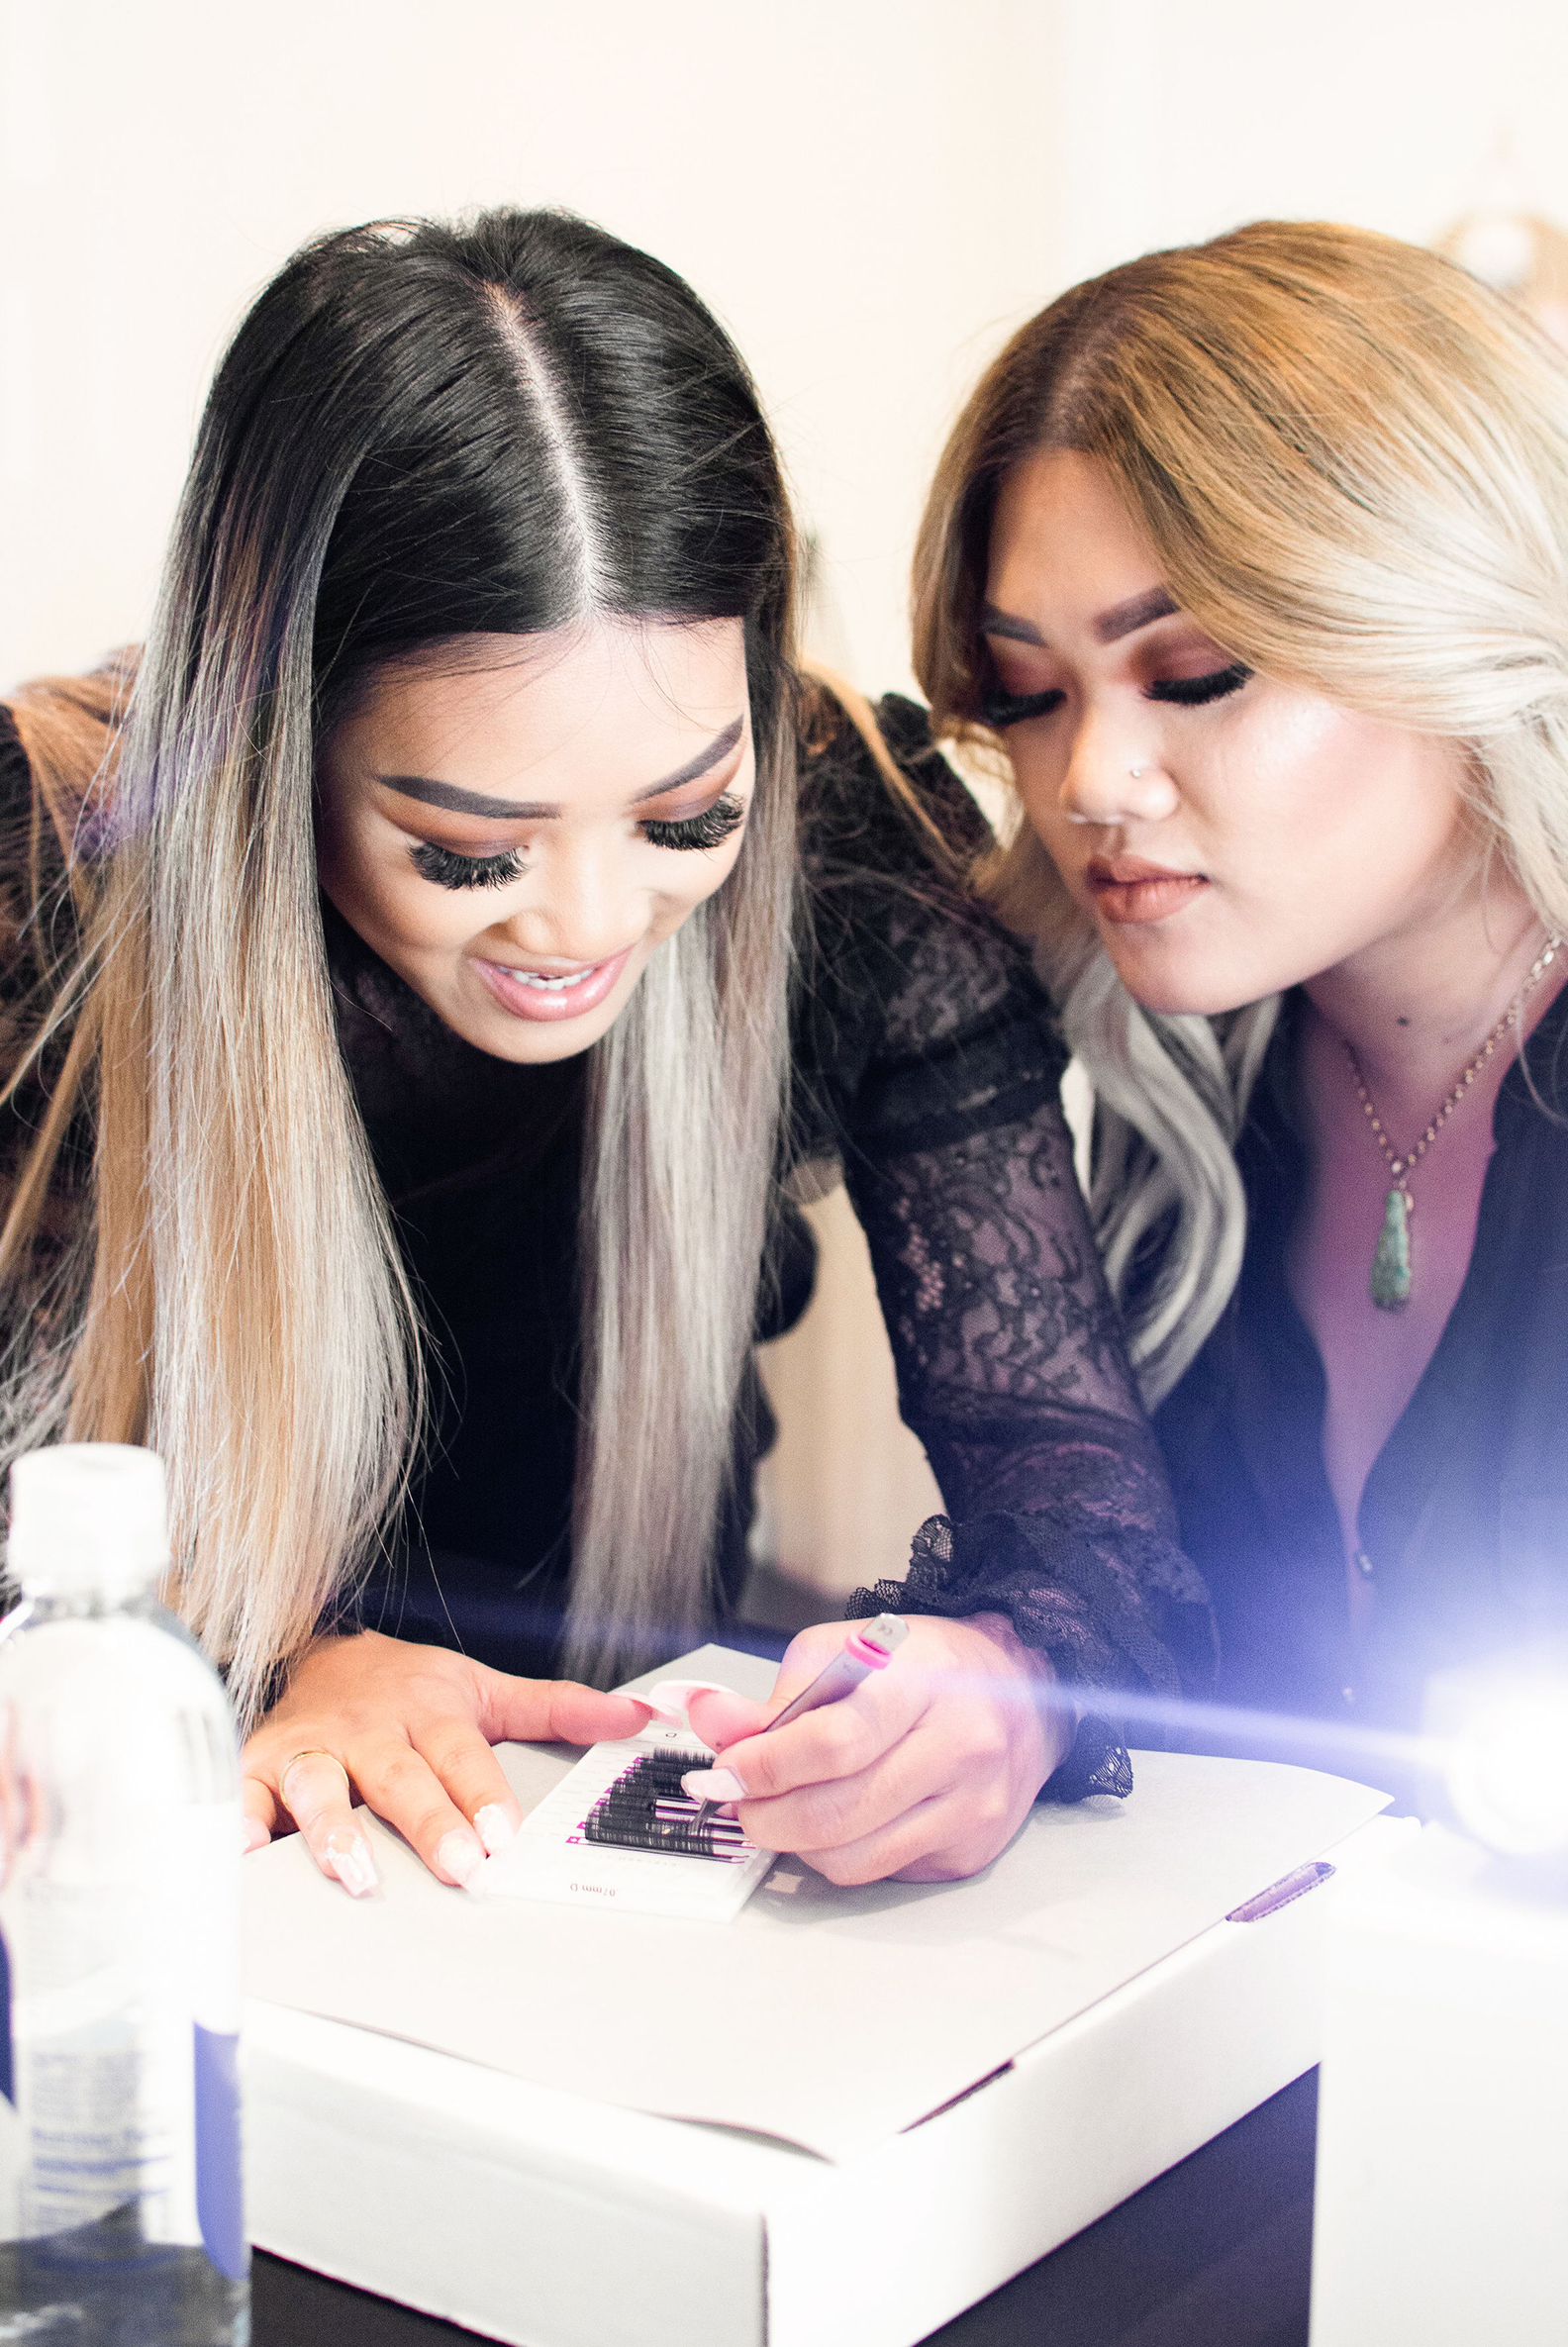 Become A Lash Boss - Hey, You Girl Boss, You!We pride ourselves in providing essential tools to push your career further in the lash industry. With more than five years of experience, we want to share with you all of our tips and tricks to creating a successful business, one lash at a time.